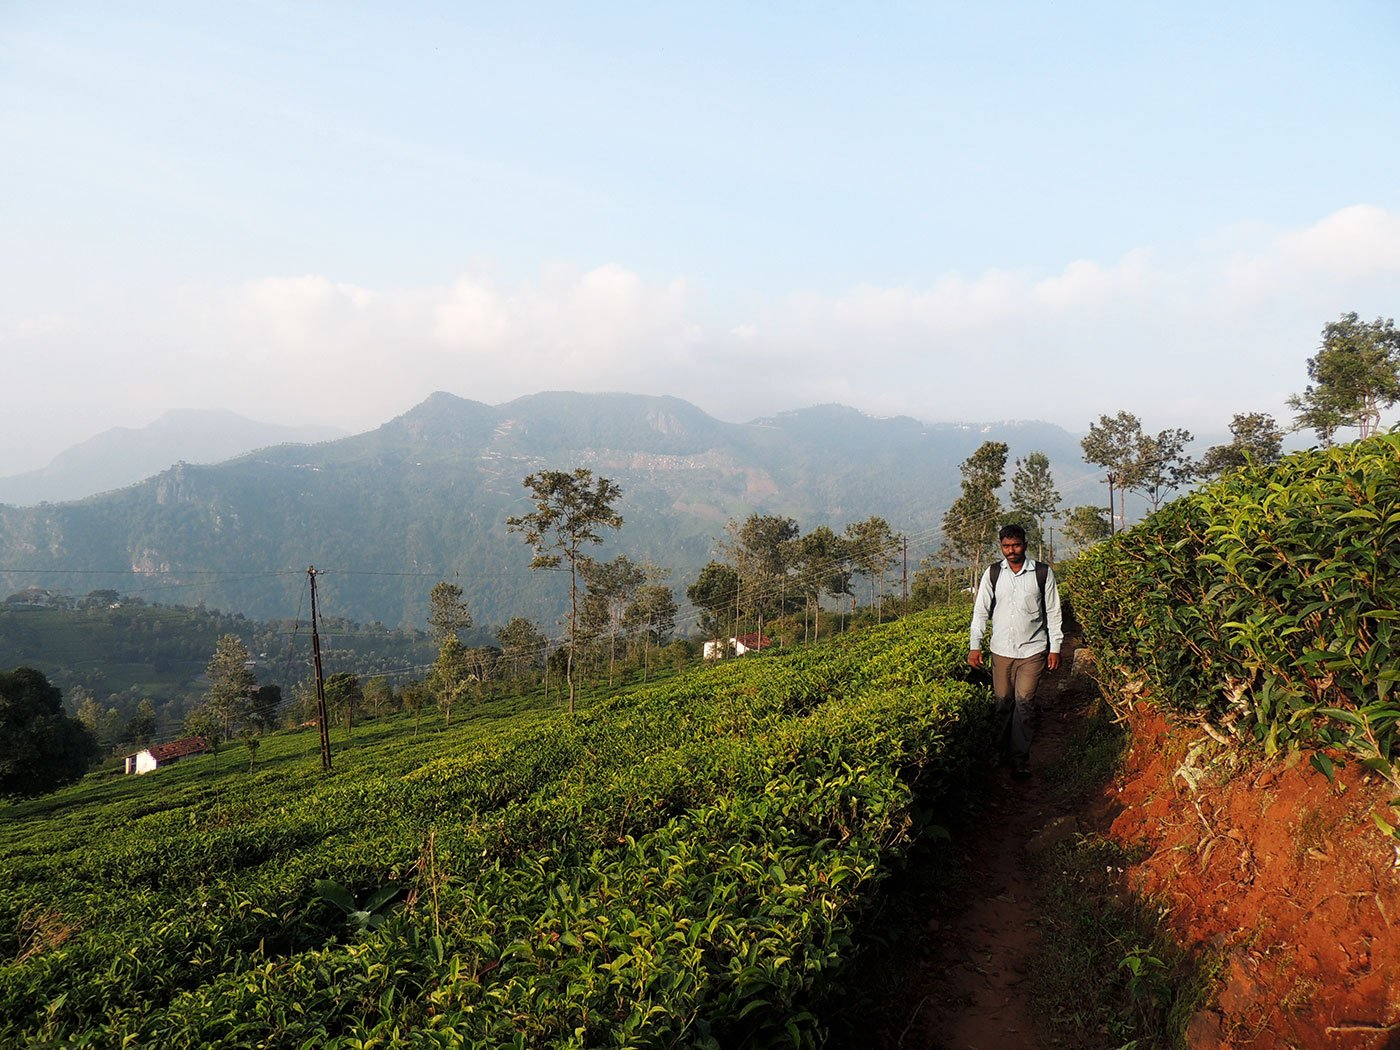 A man walking along a path in the tea gardens of the Nilgiri hills